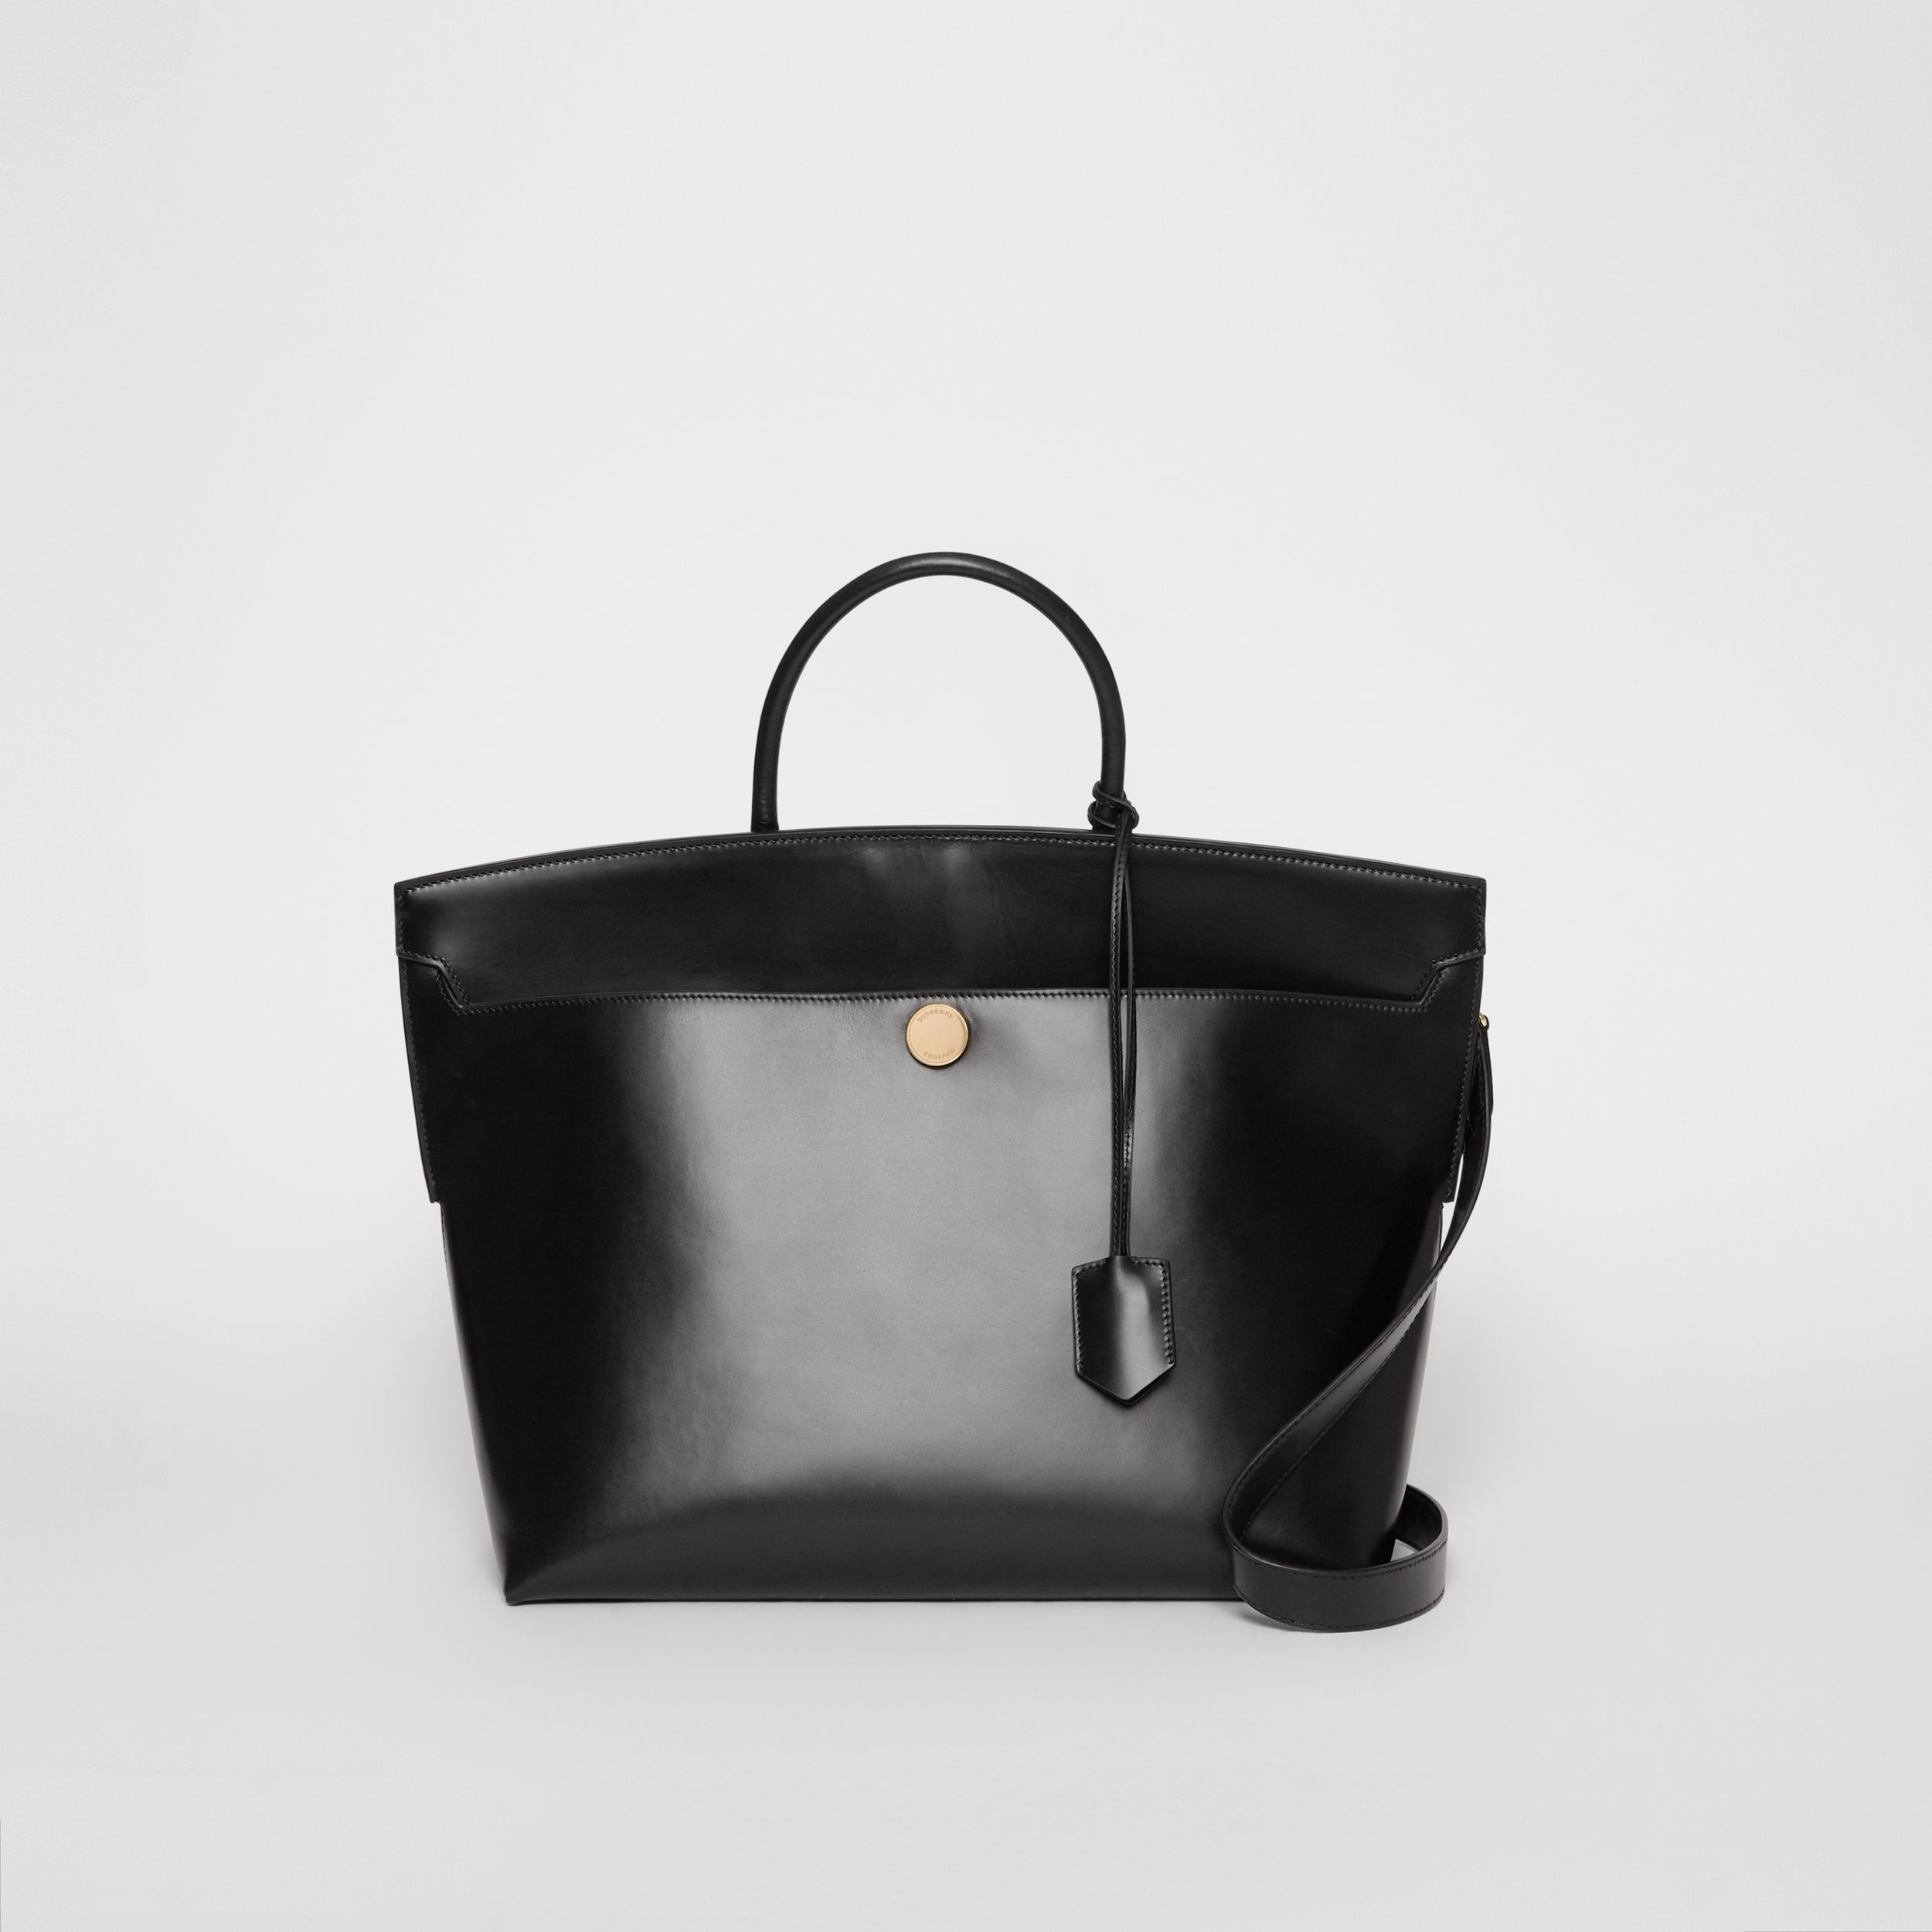 Leather Society Top Handle Bag in Black - Women | Burberry - 1